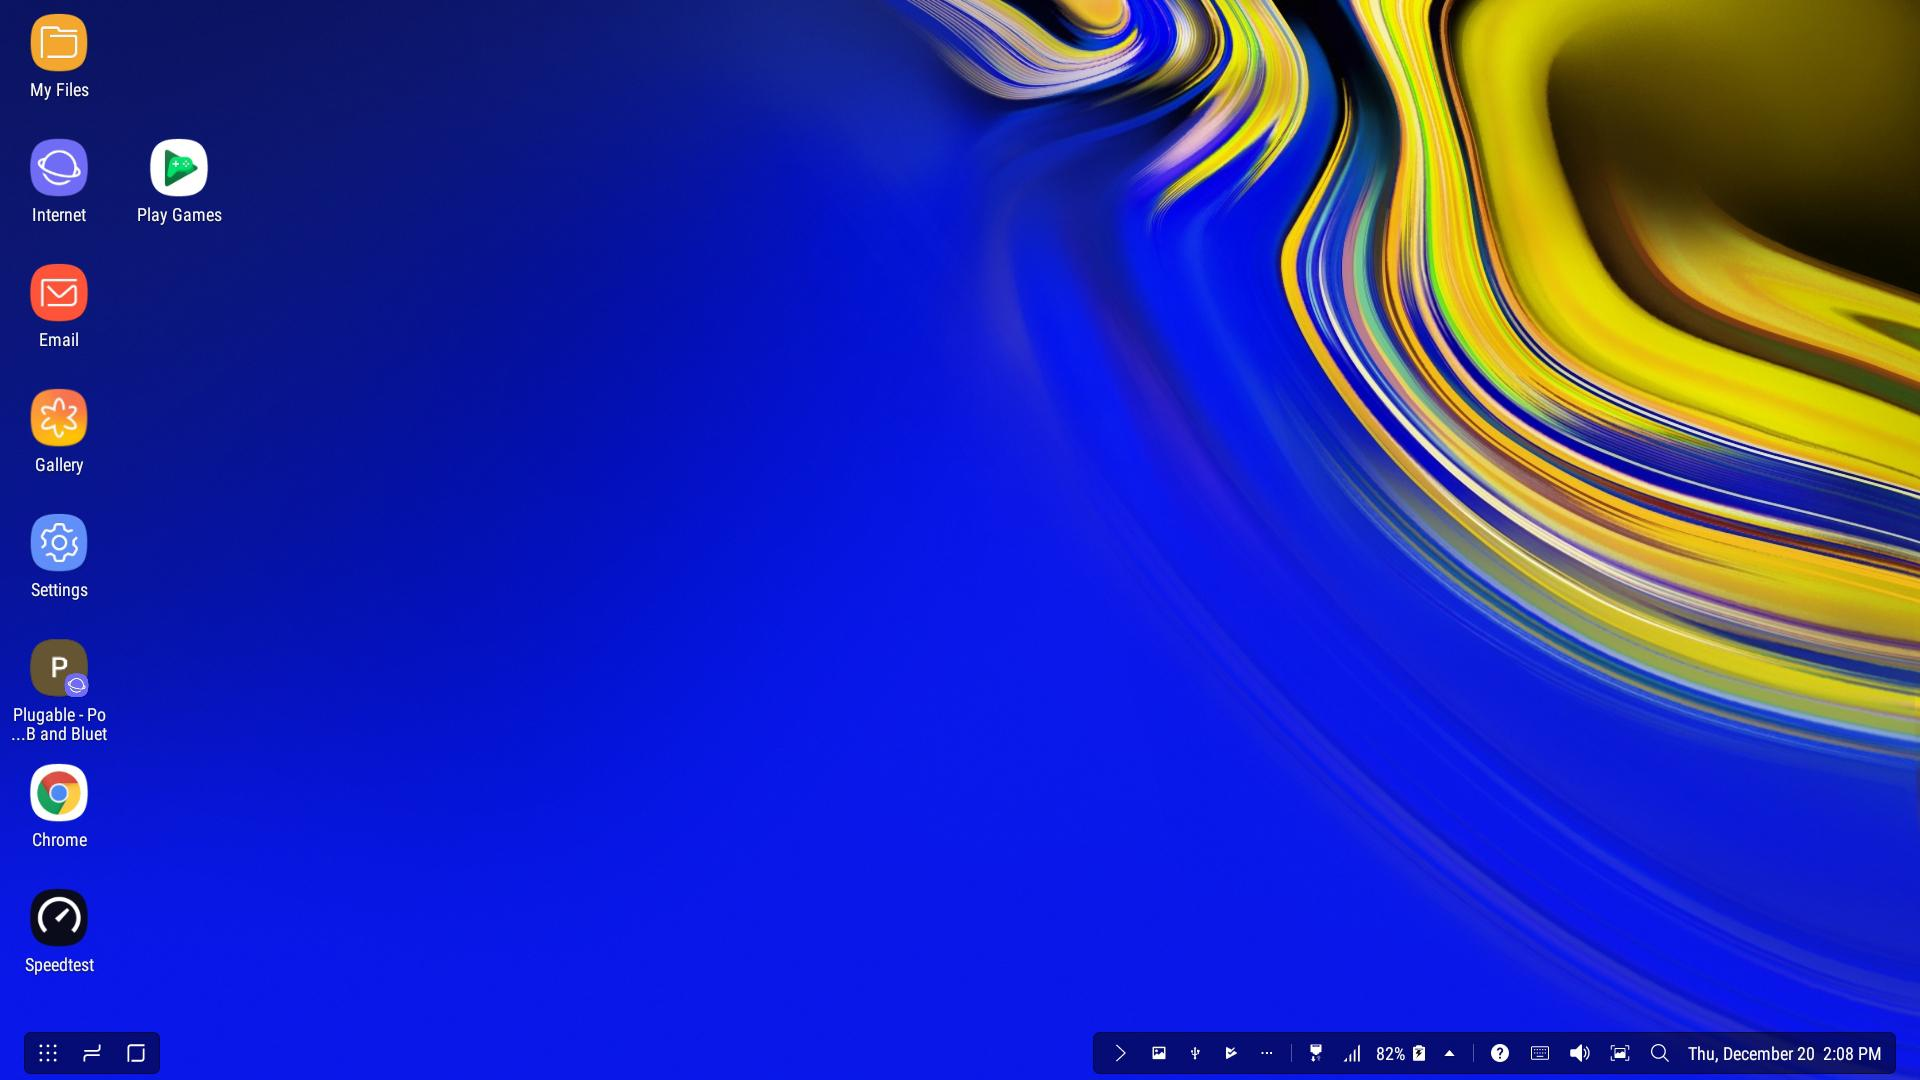 Desktop view from our Samsung Galaxy Note 9 with DeX!